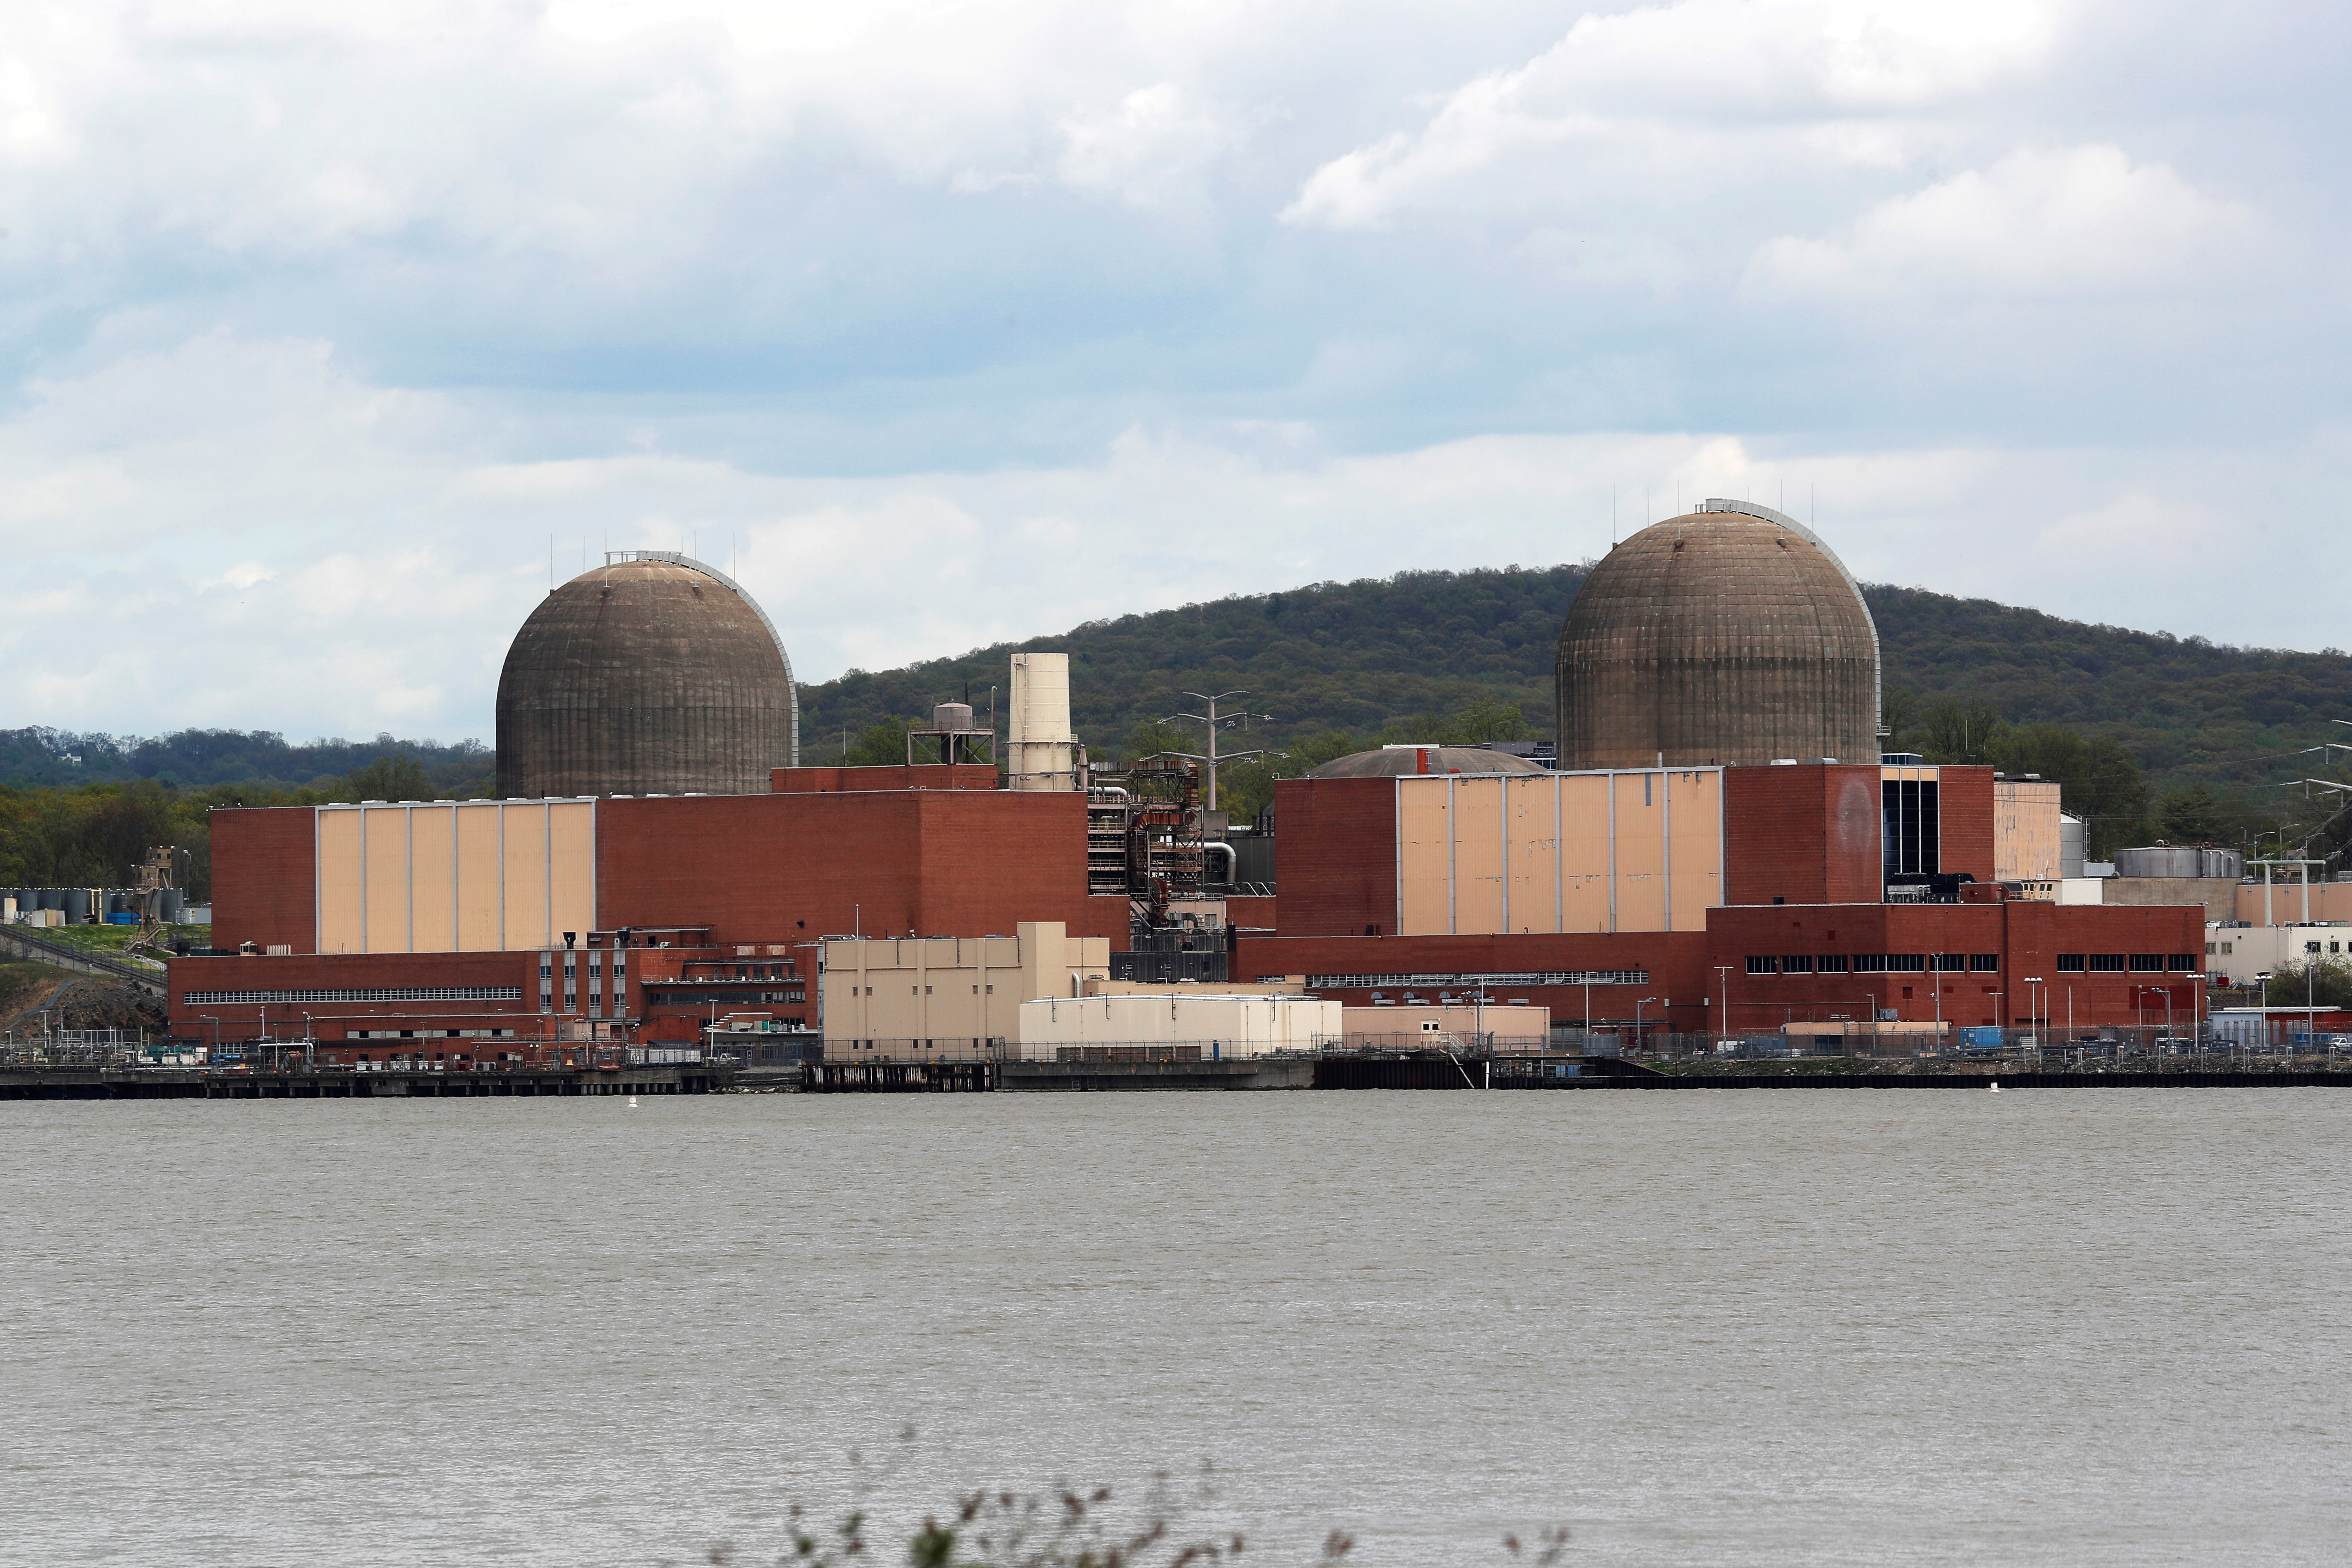 The Indian Point Energy Center nuclear power plant, which New York Governor Andrew Cuomo announced will shutdown as planned, is pictured along the eastern shore of the Hudson River in Buchanan, New York, U.S., April 30, 2021. REUTERS/Mike Segar